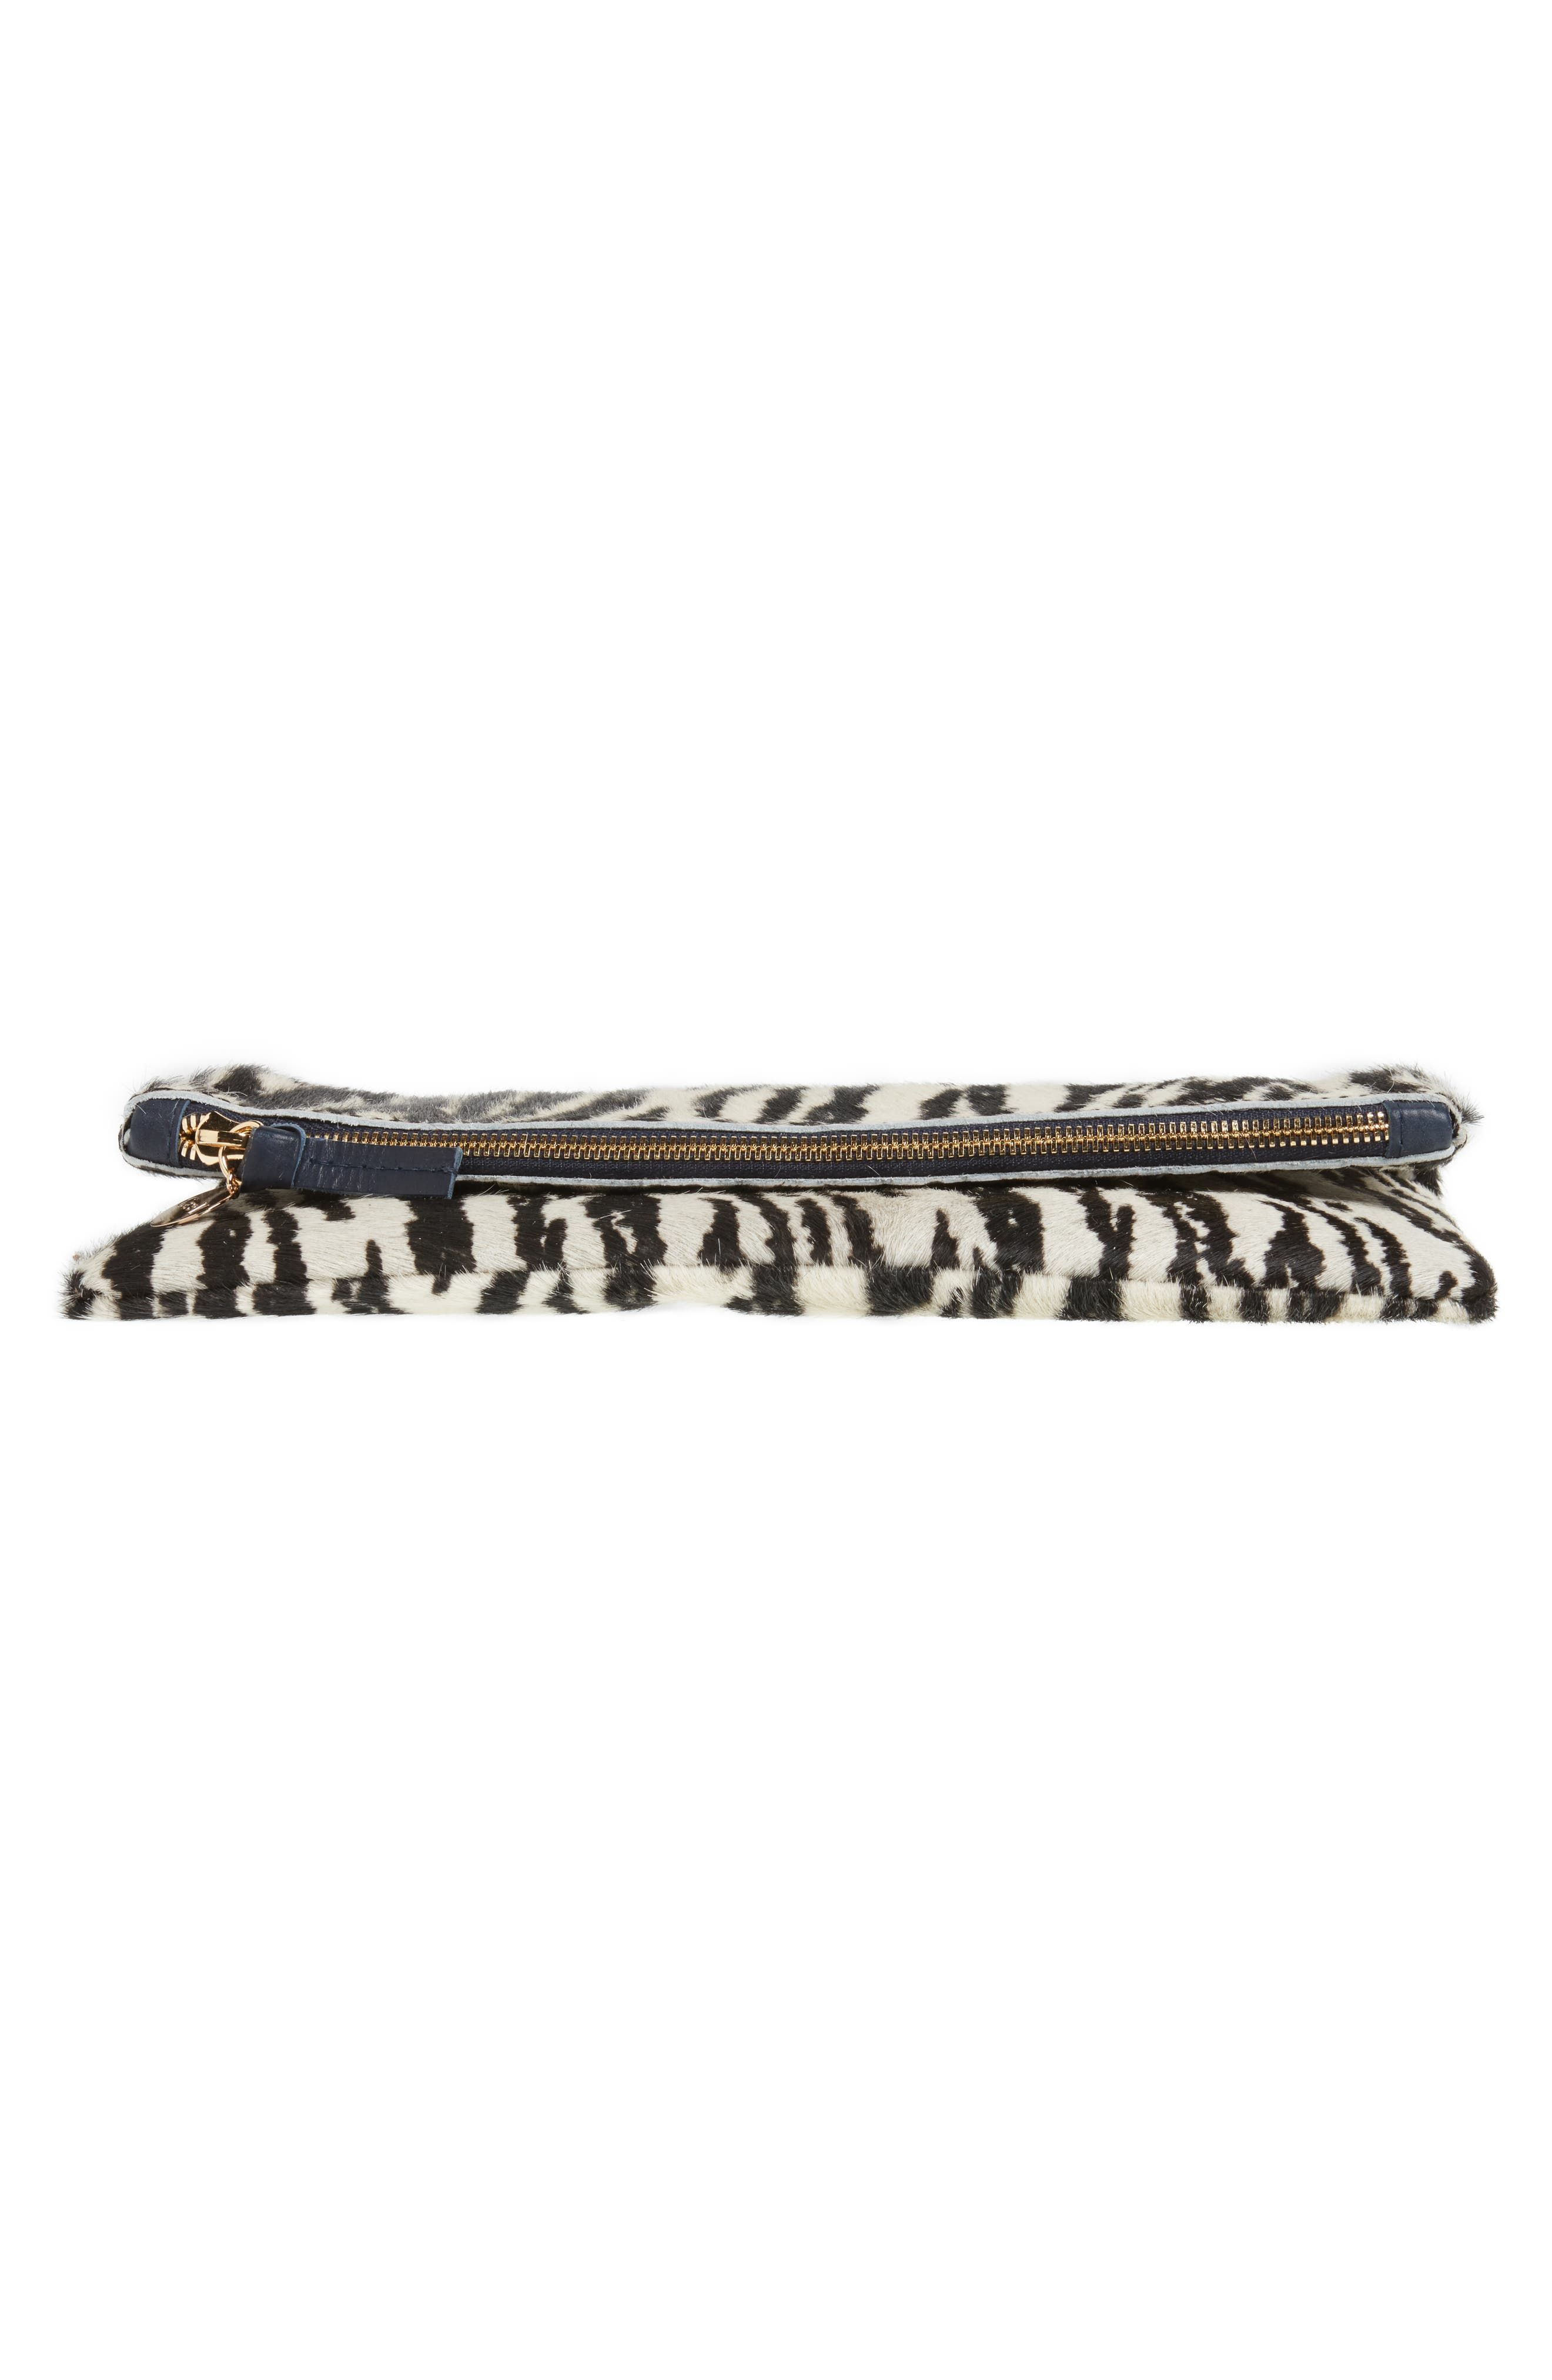 Zebra Print Genuine Calf Hair Foldover Clutch,                             Alternate thumbnail 6, color,                             Zebra Hair On